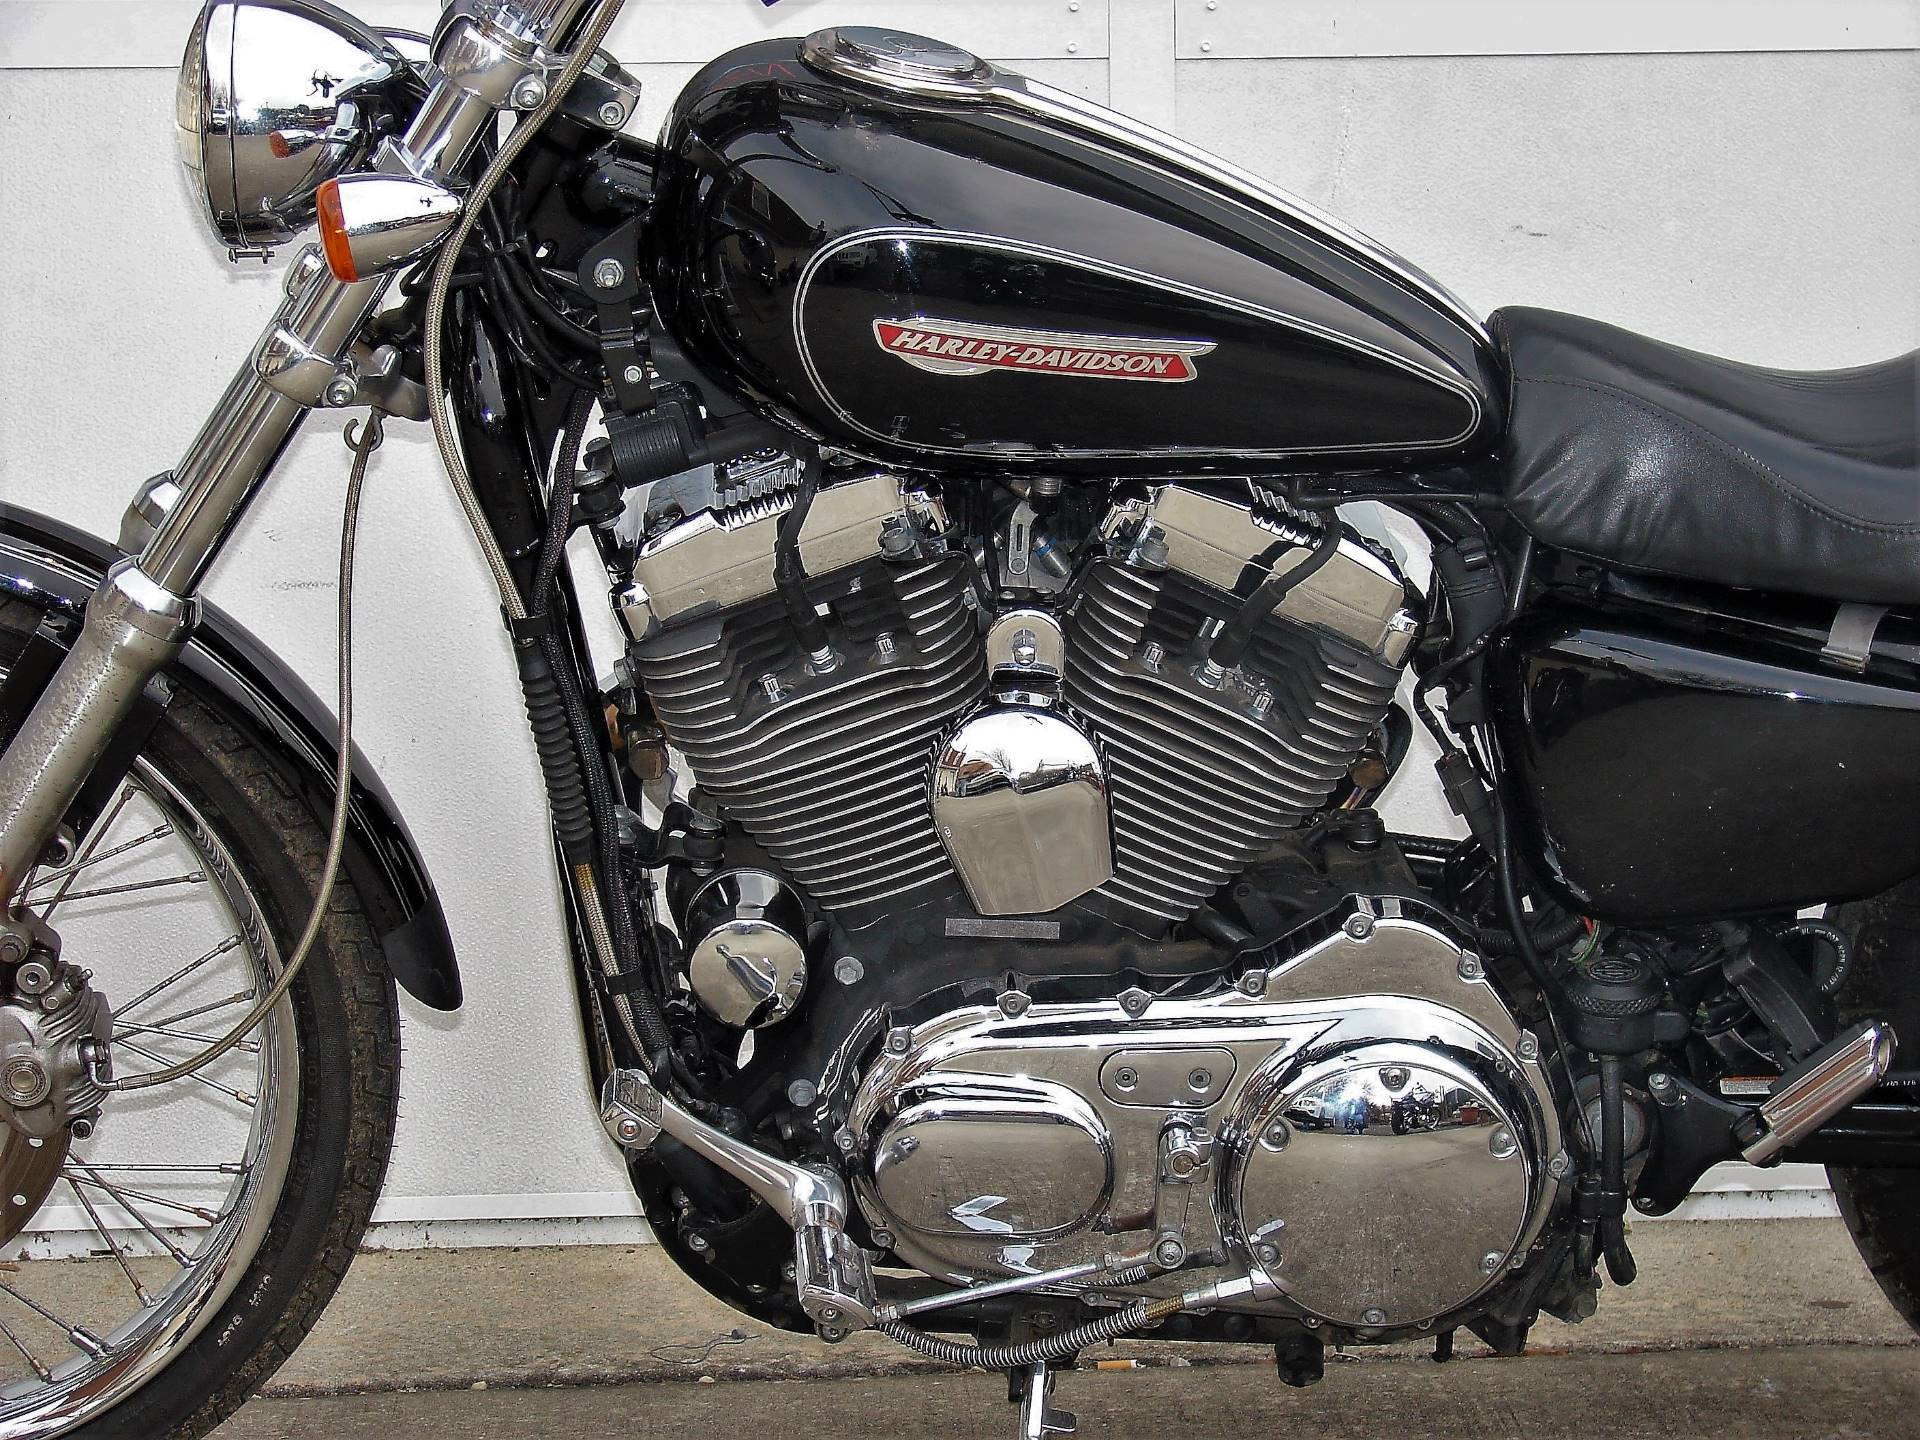 2008 Harley-Davidson 1200cc Sportster  (Black with Silver Pinstripe) in Williamstown, New Jersey - Photo 6